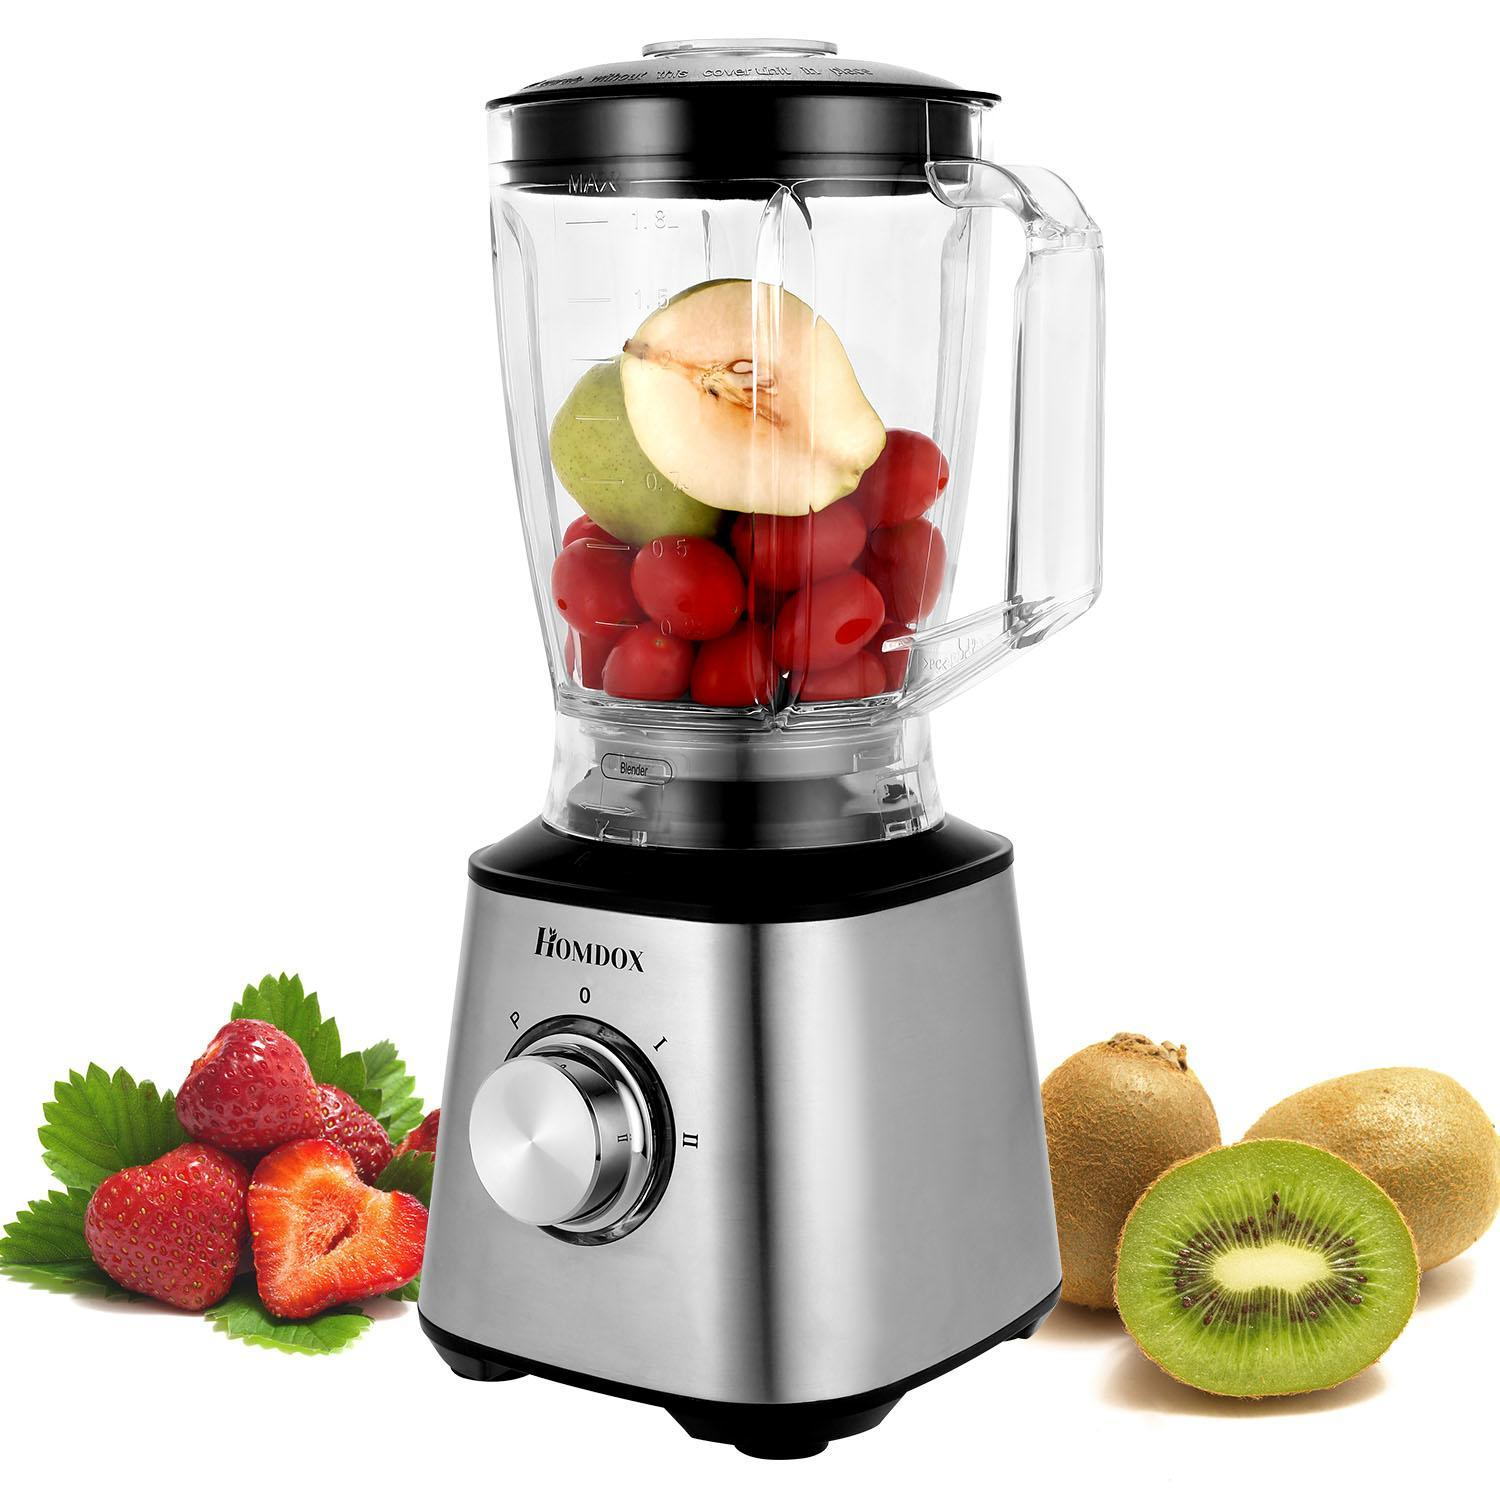 Blender 800W Professional High Speed Blender home Commercial Smoothie Mixer Heavy Duty Food Processor for Ice, Soup, Mincemeat, Nut butter with 1.8L Plastic  Jar, Black